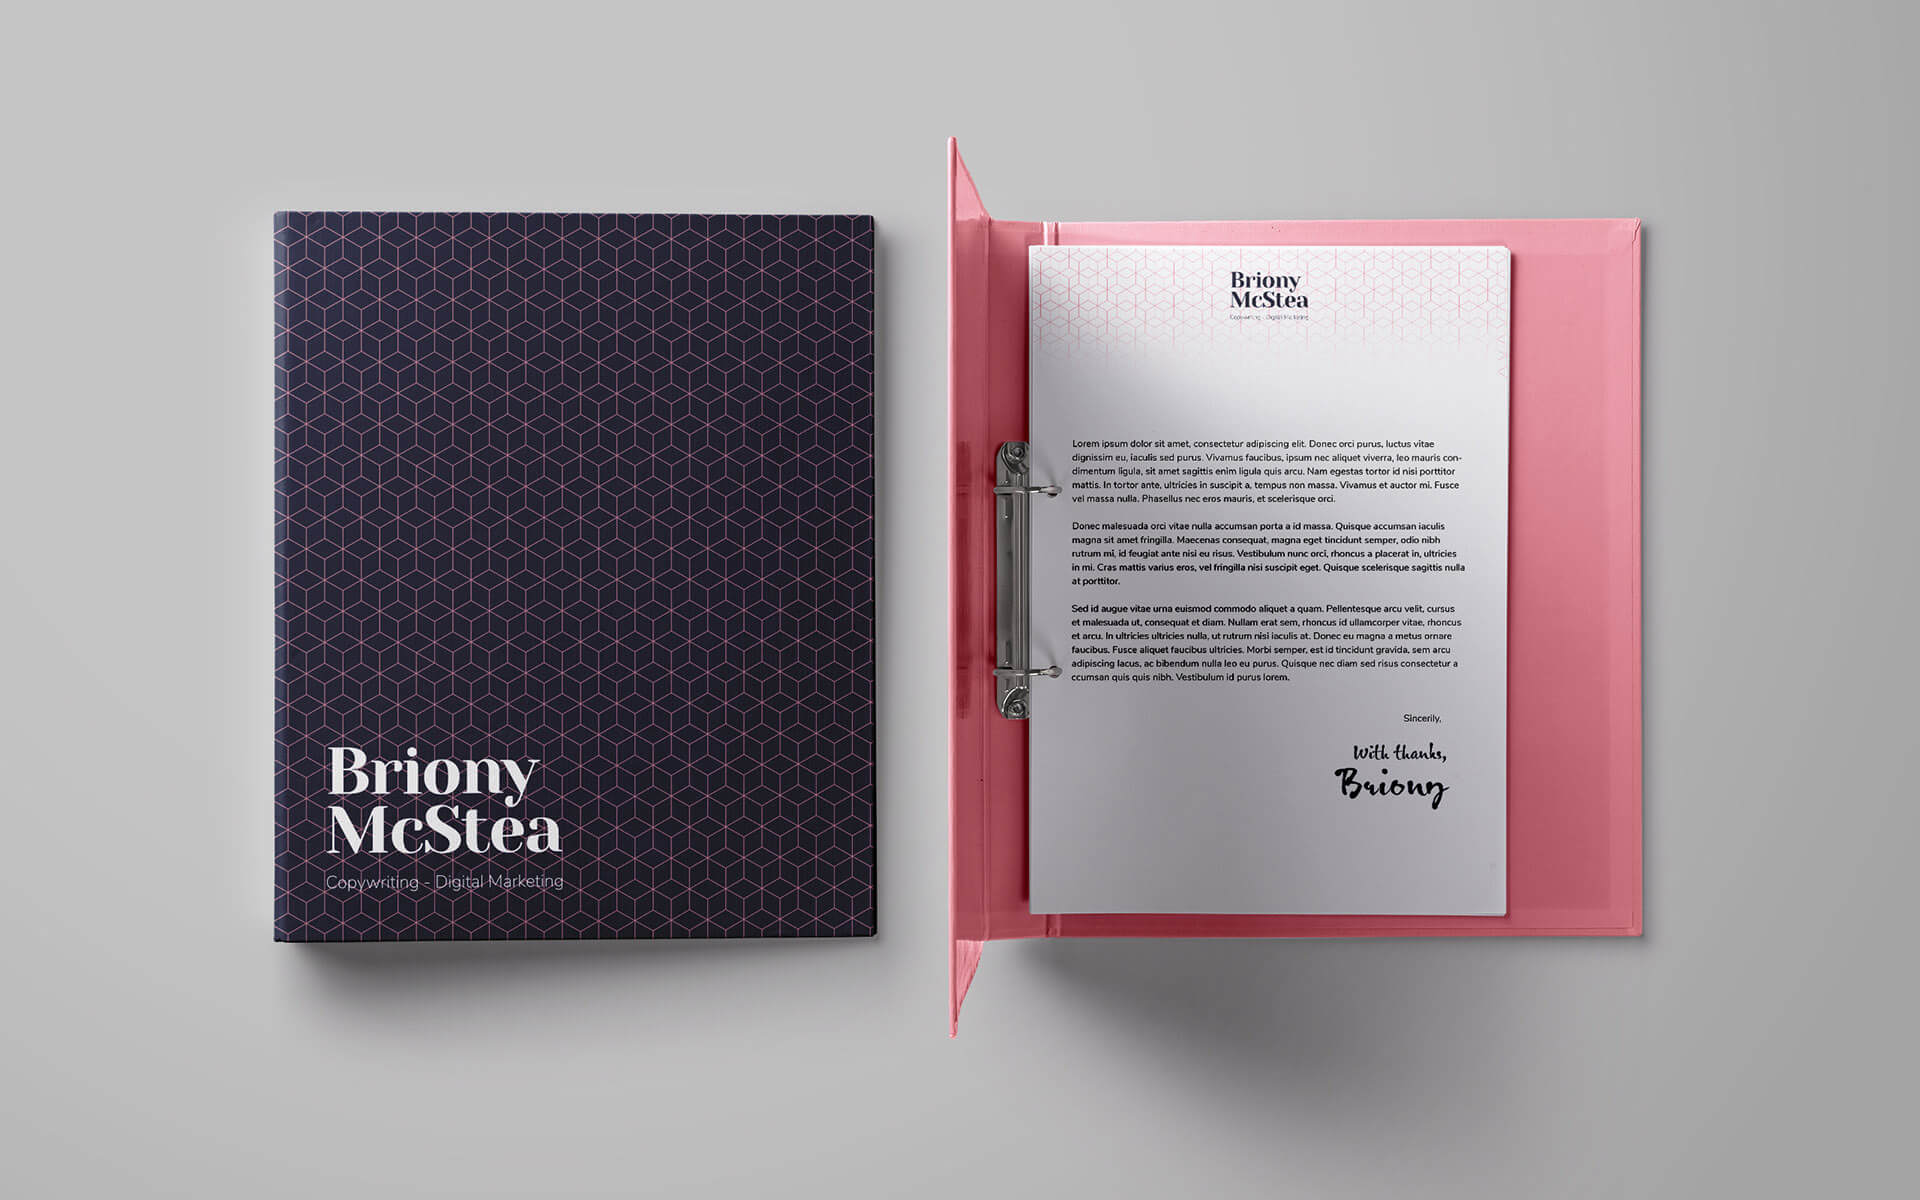 Briony McStea Binder Stationery Mockup - THAT Branding Company - Ethical Creative Design and Branding Agency in Newcastle Gateshead and Durham - UK.jpg